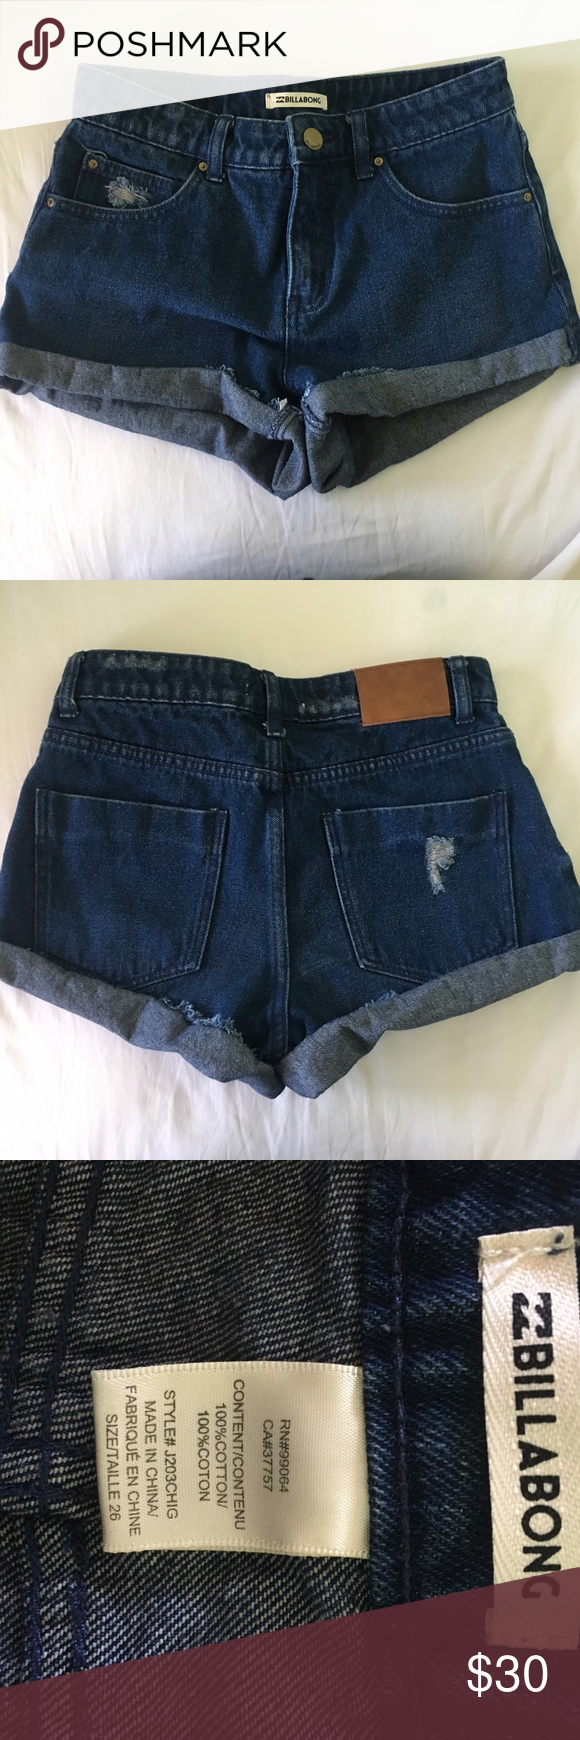 Billabong jean shorts Billabong rolled up jean shorts Billabong Shorts Jean Shorts